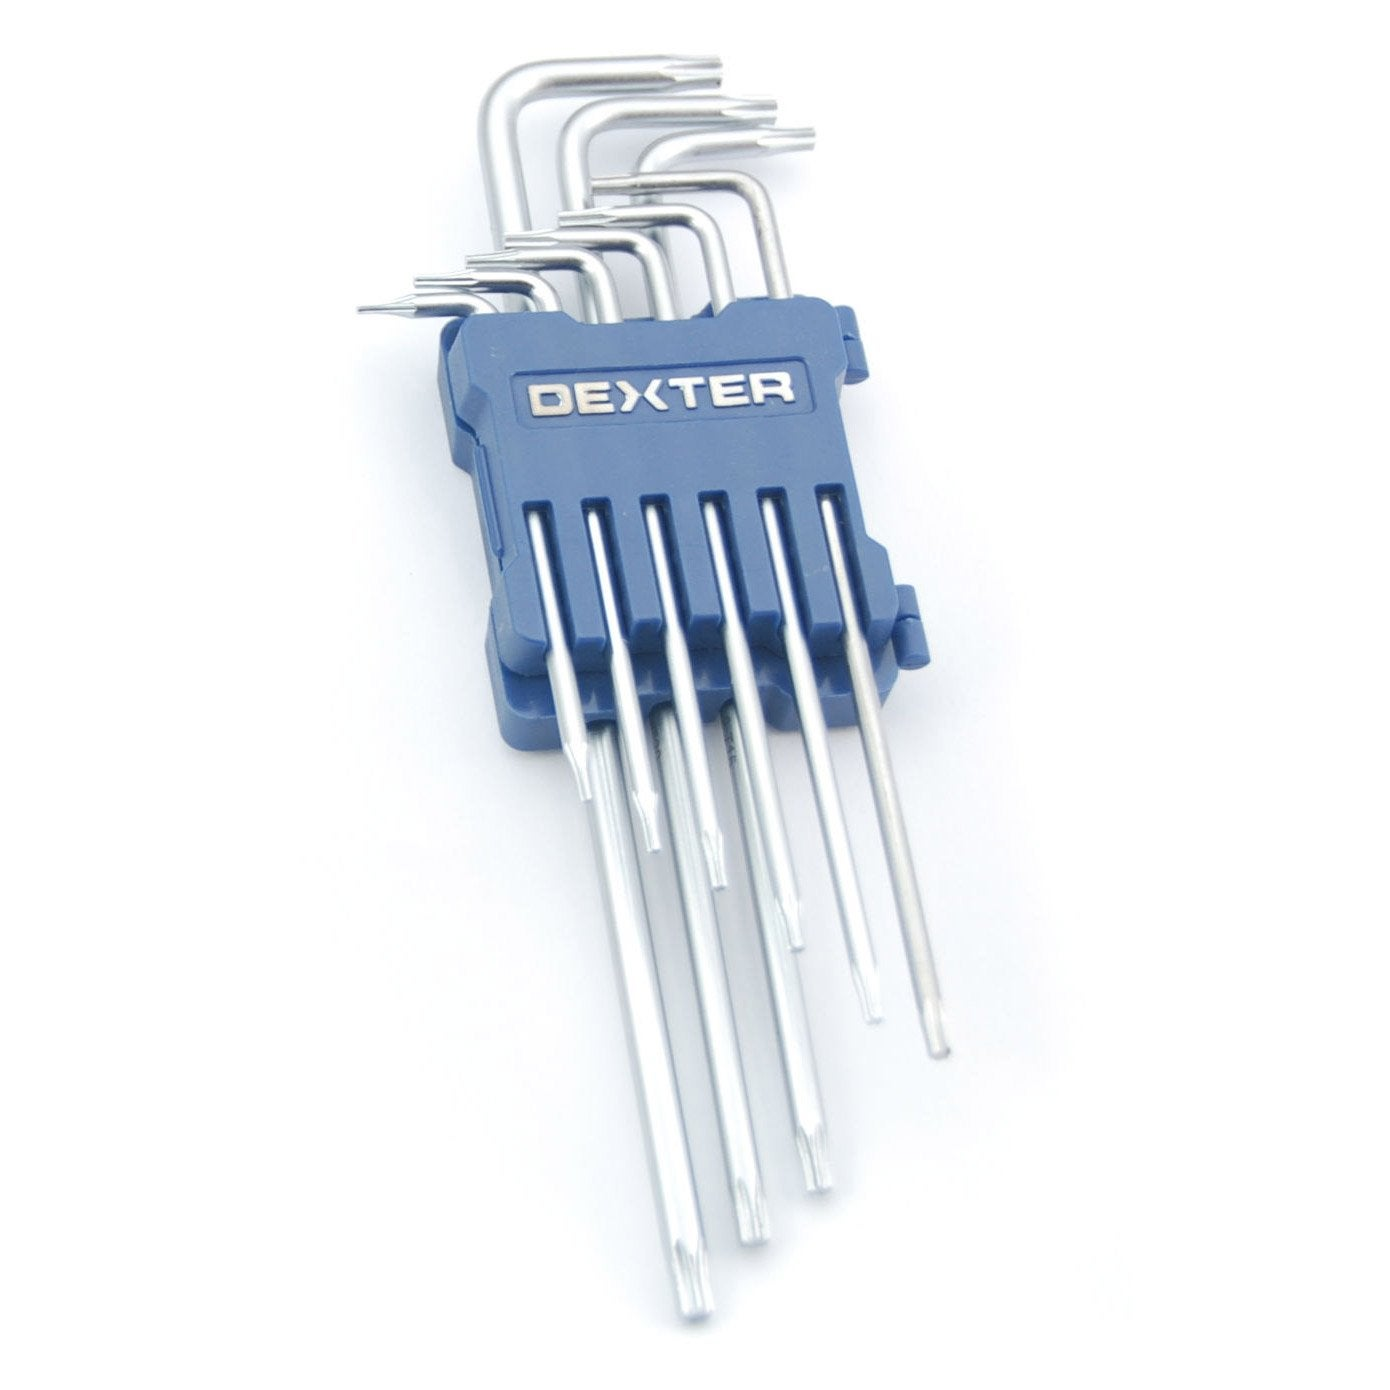 Douille torx male leroy merlin